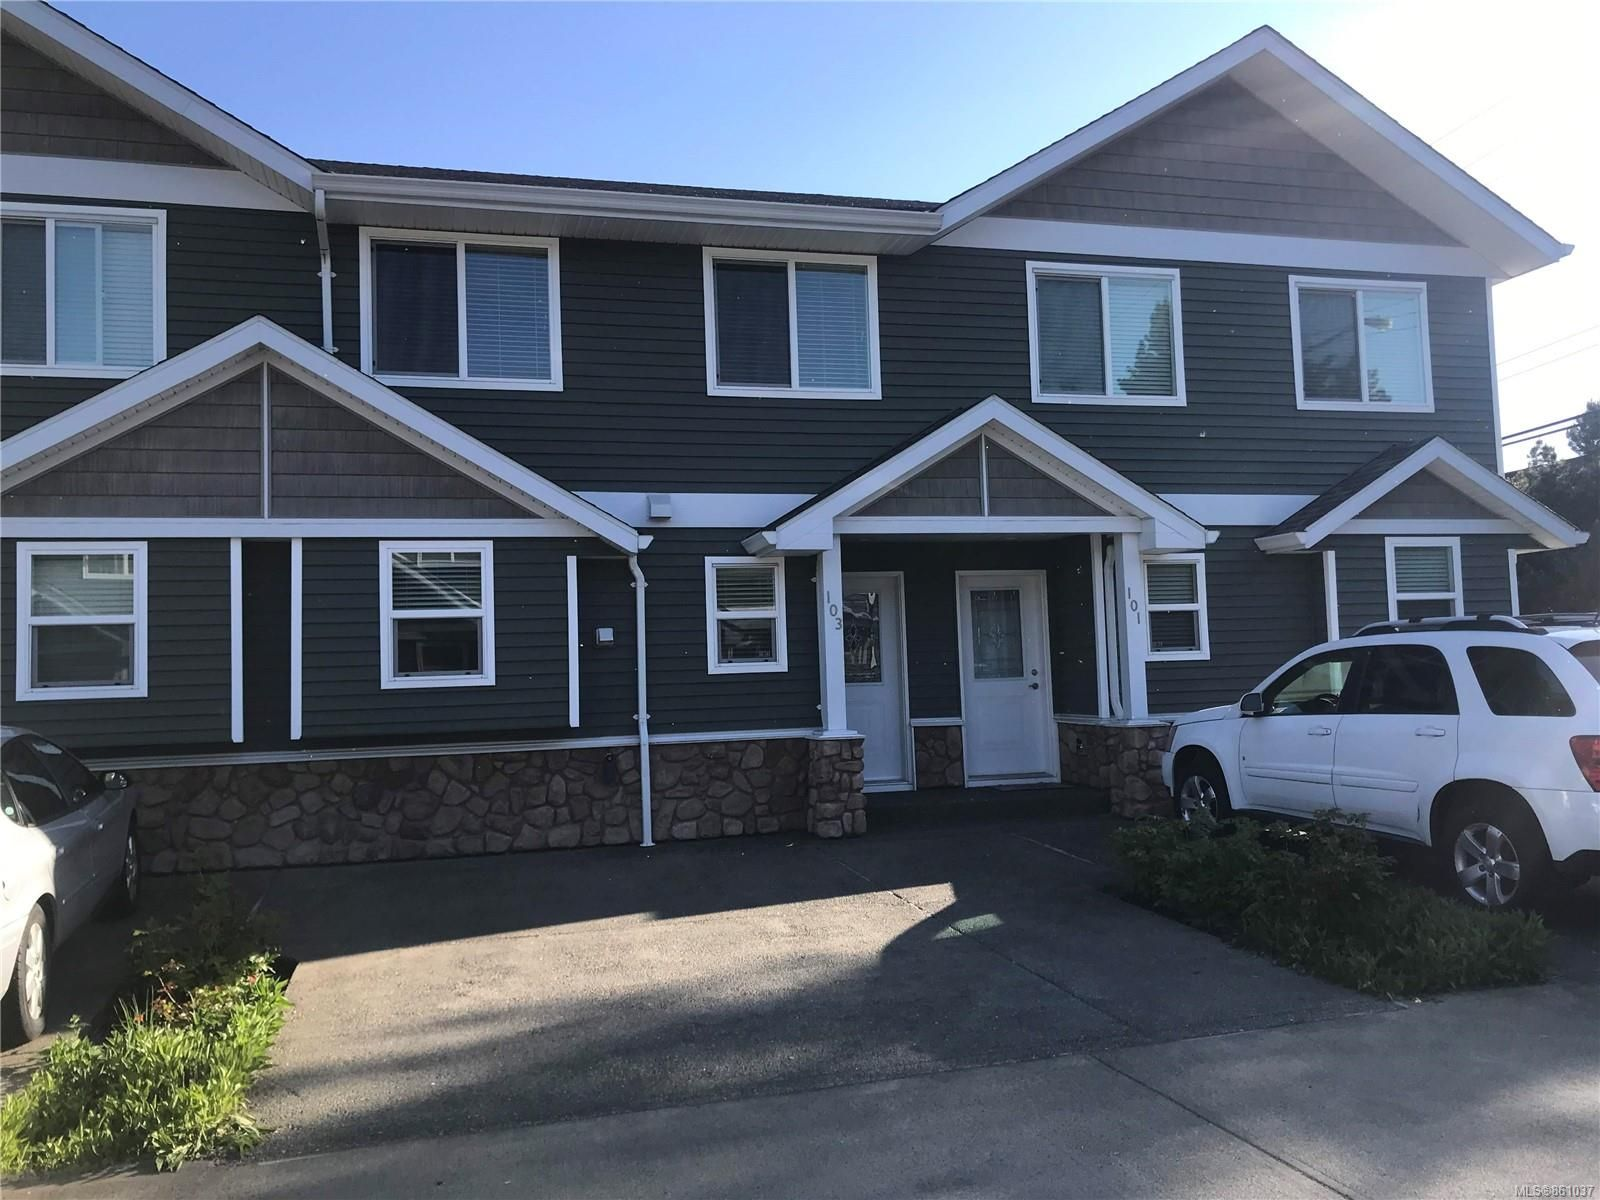 Main Photo: 103 170 Centennial Dr in : CV Courtenay East Row/Townhouse for sale (Comox Valley)  : MLS®# 861037